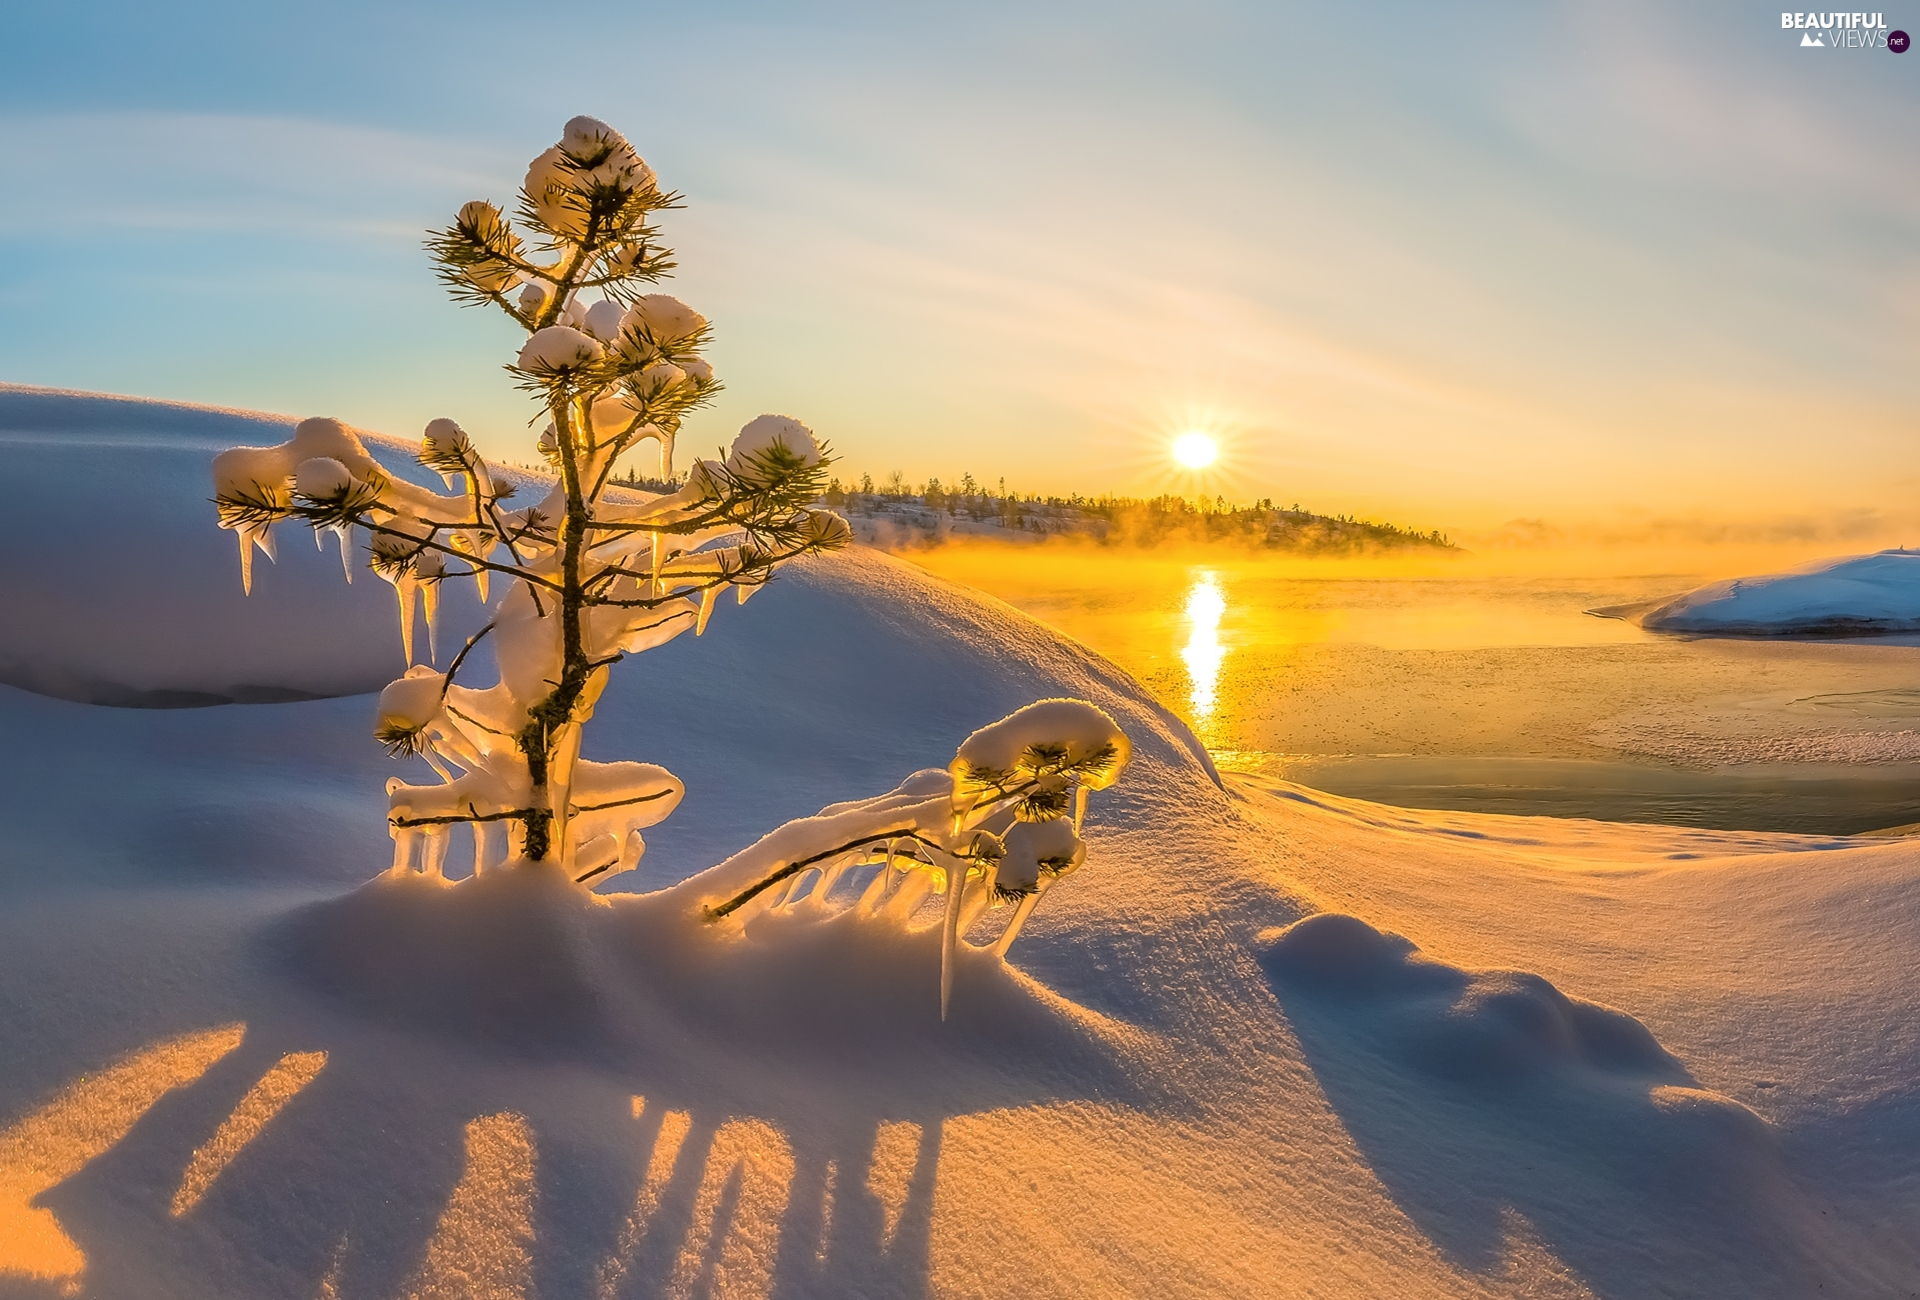 sapling, lake, Fog, snowy, winter, icicle, Sunrise